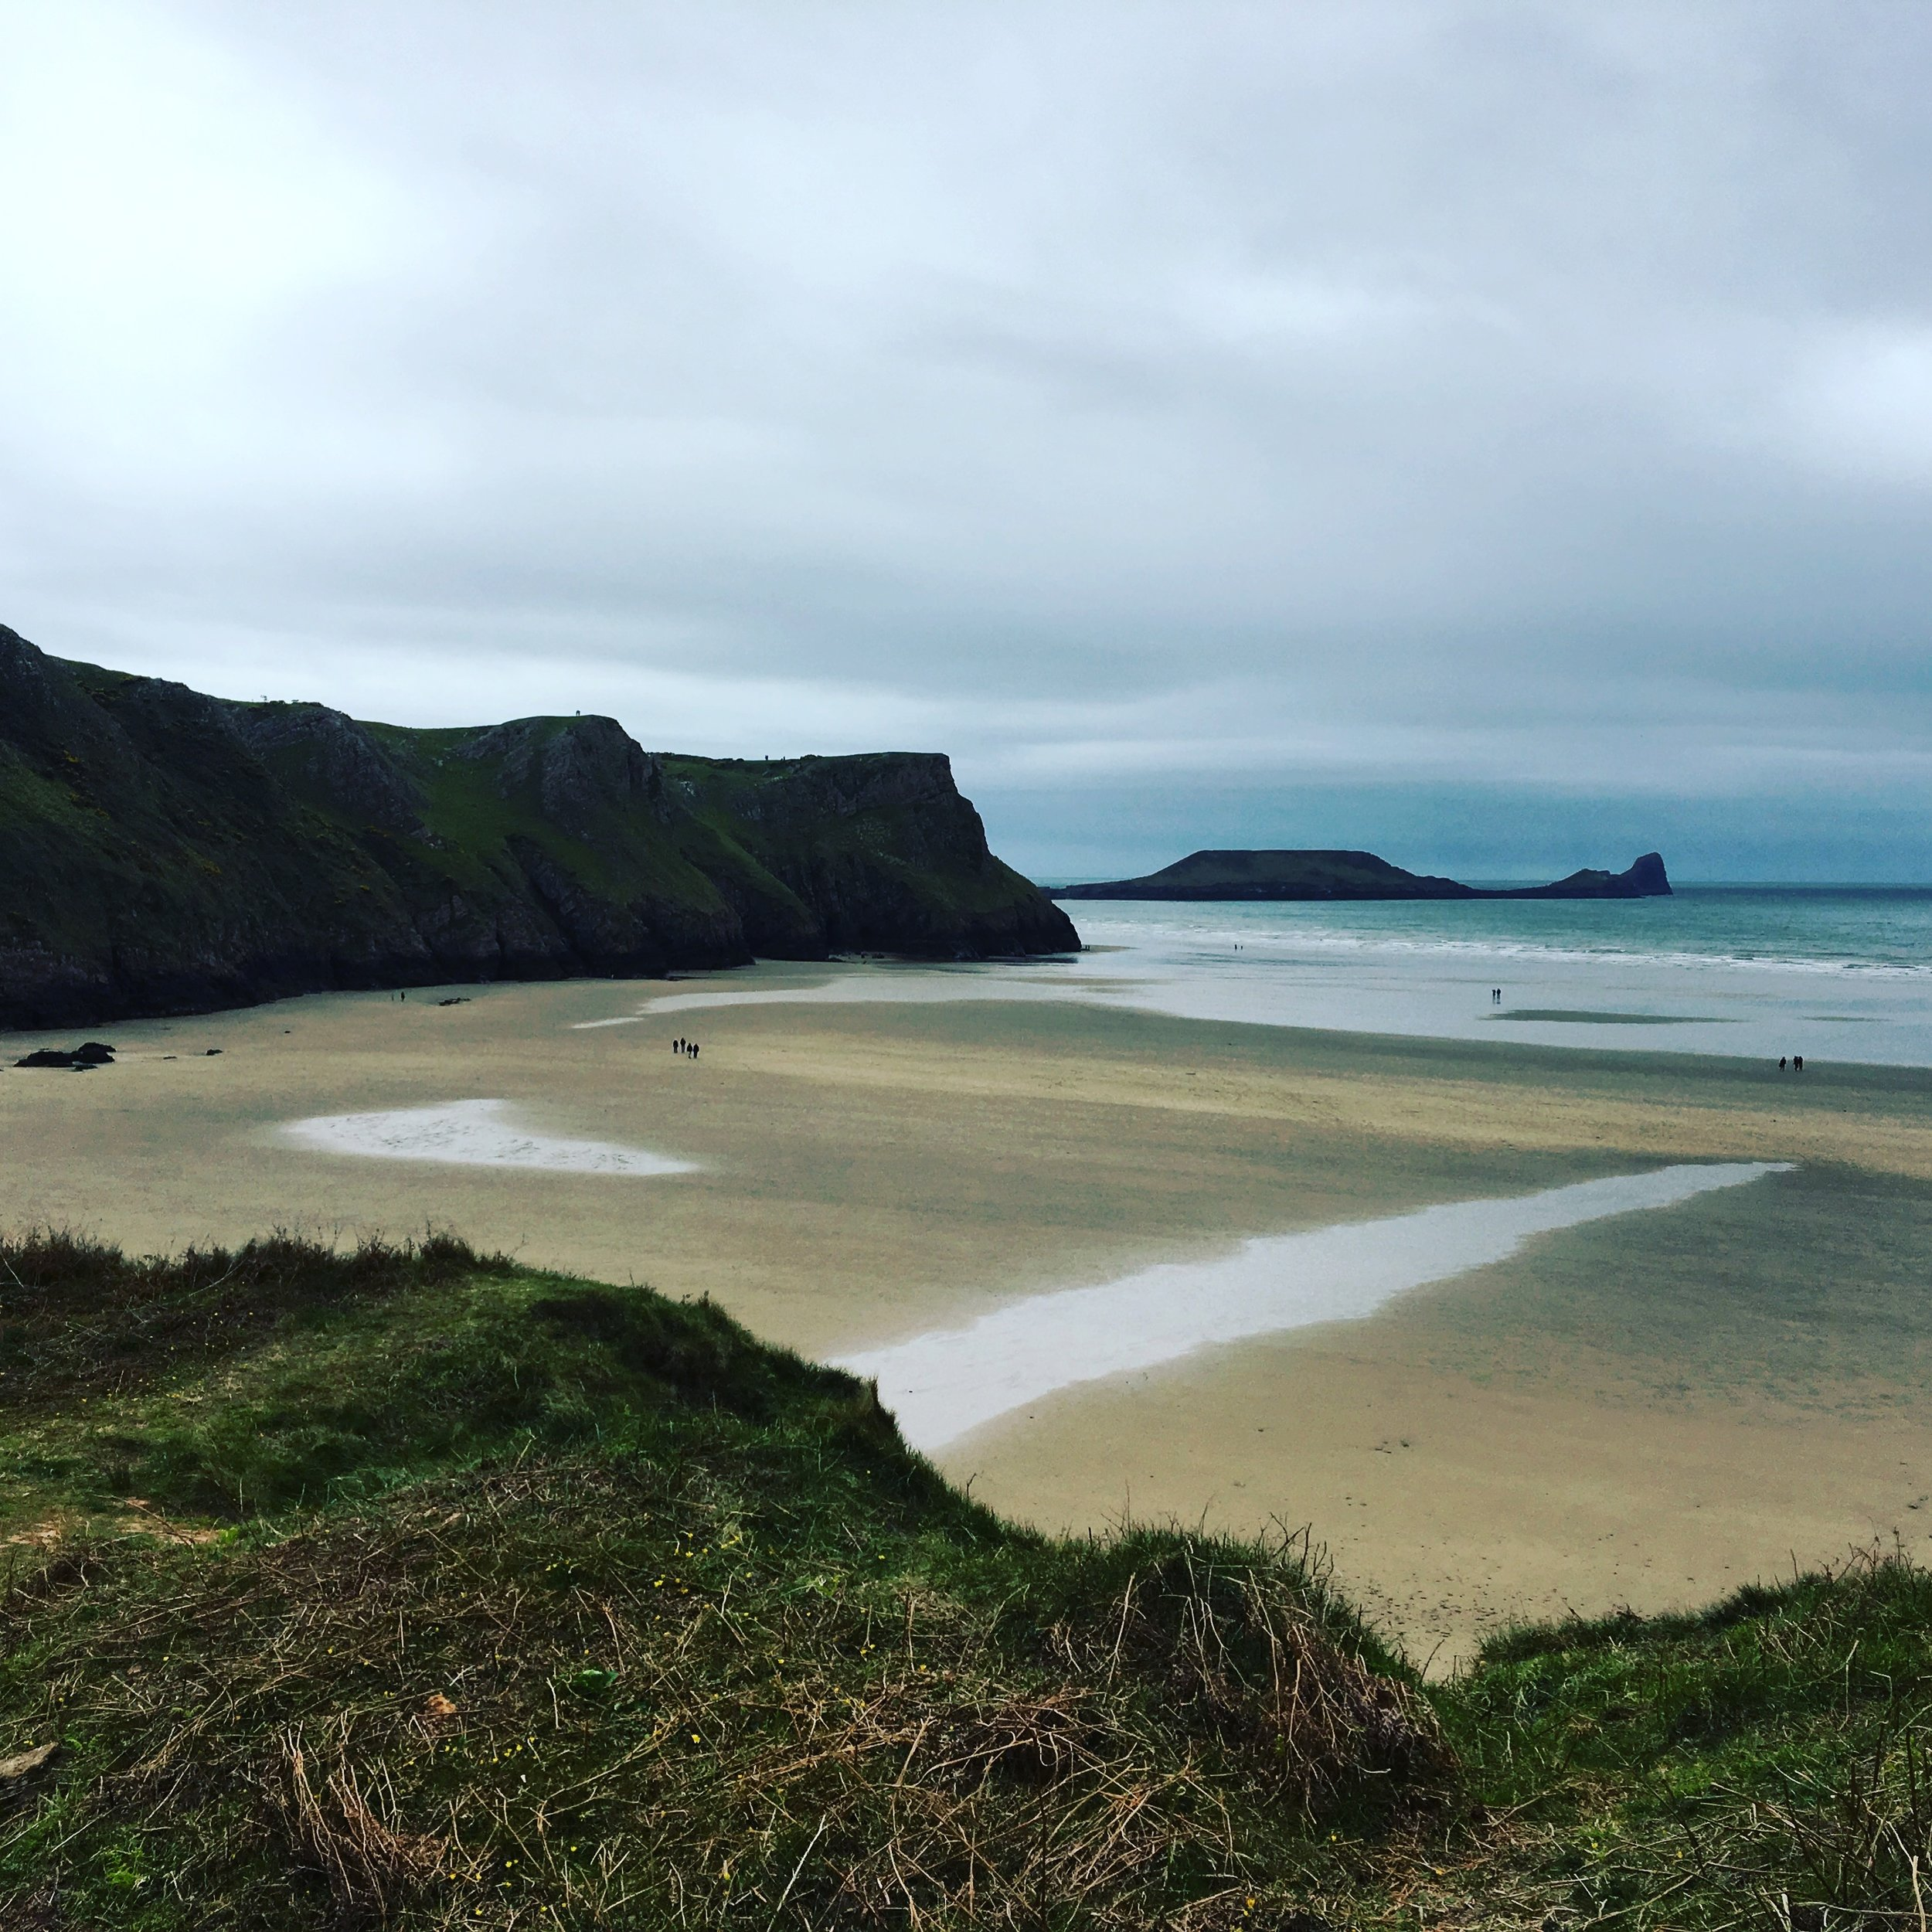 Worms head and beach